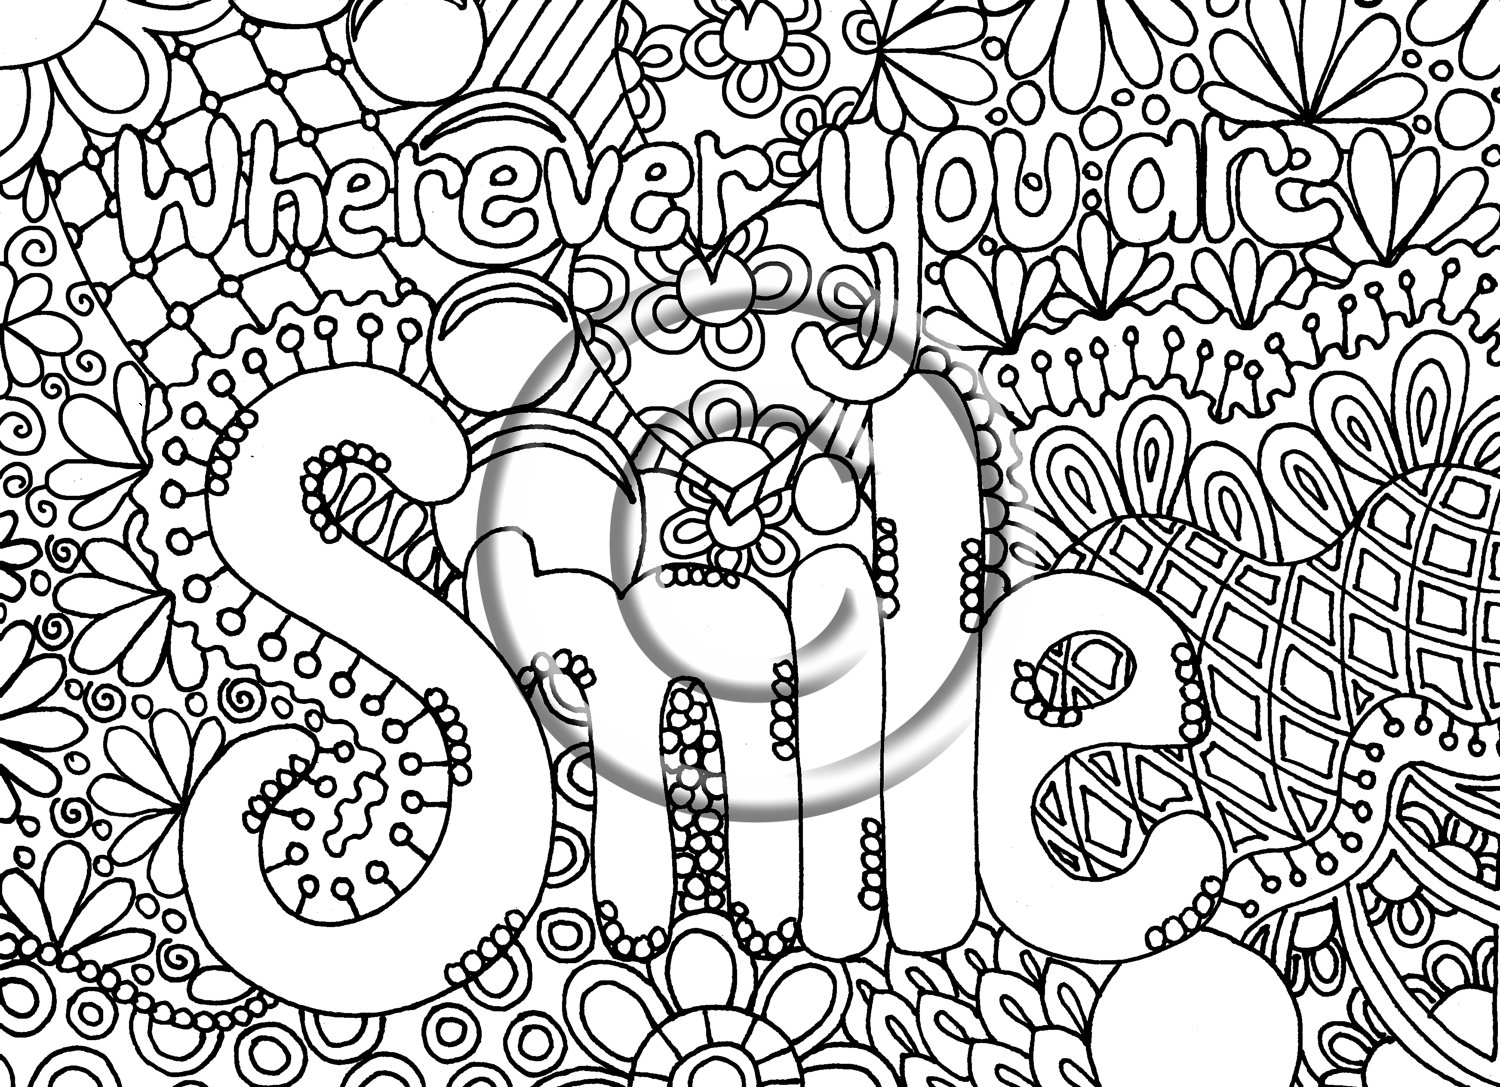 8 Best Images Of Free Printable Coloring Pages Doodle Art Printable Doodle Coloring Pages Heart Doodle Art Coloring Pages And Let S Doodle Coloring Pages Printablee Com